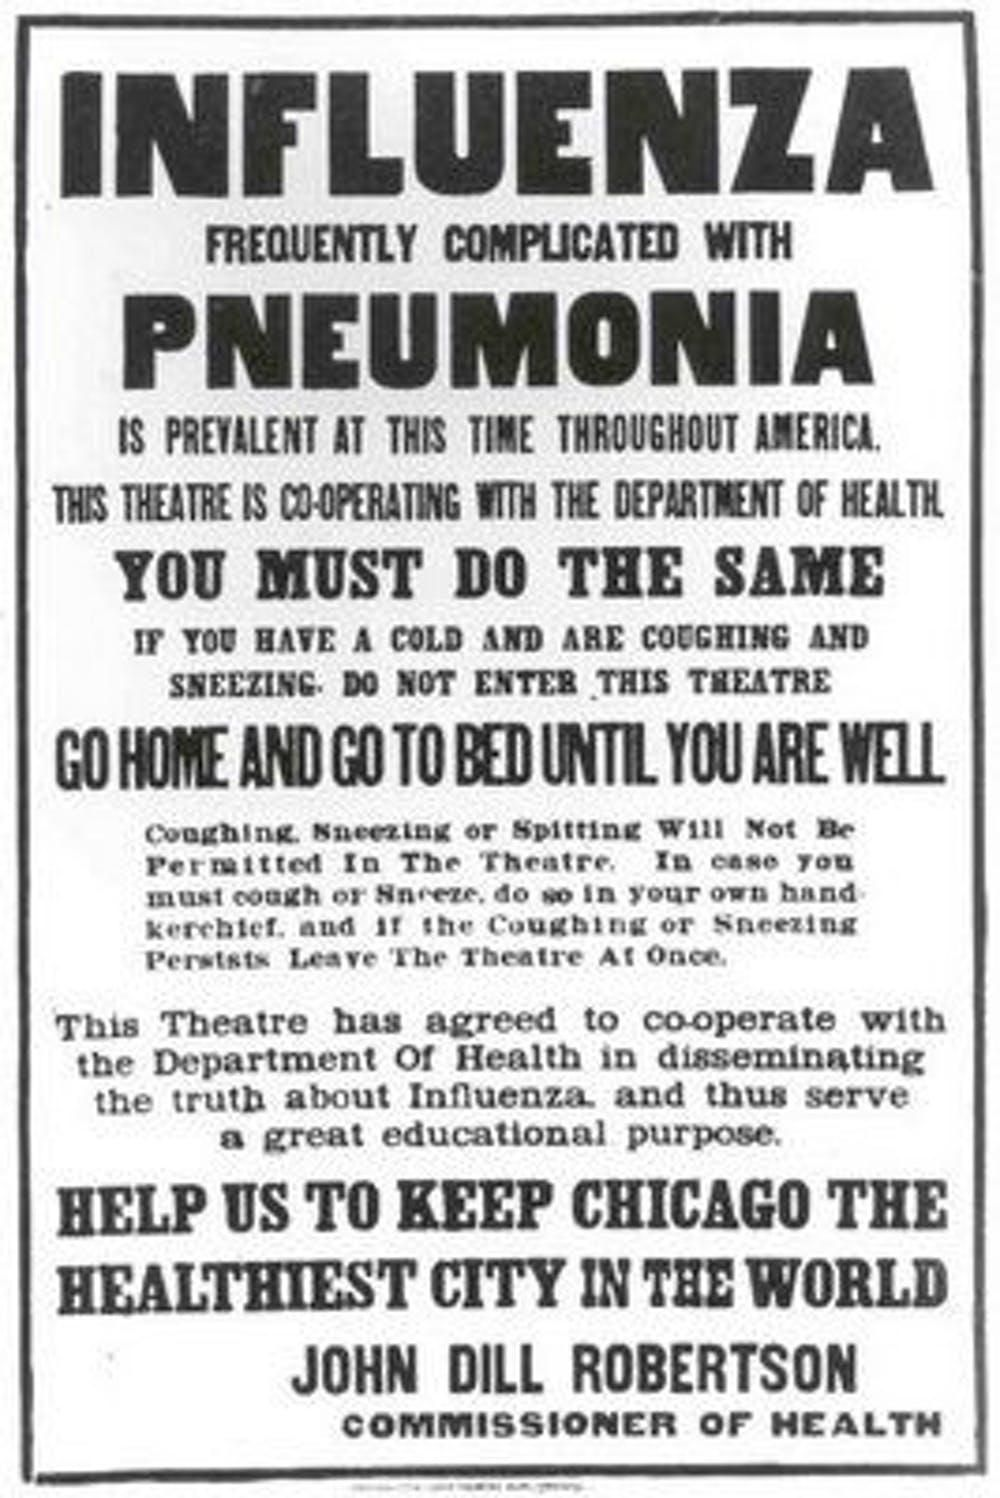 A Chicago Public Health poster outlines flu regulations during the pandemic.